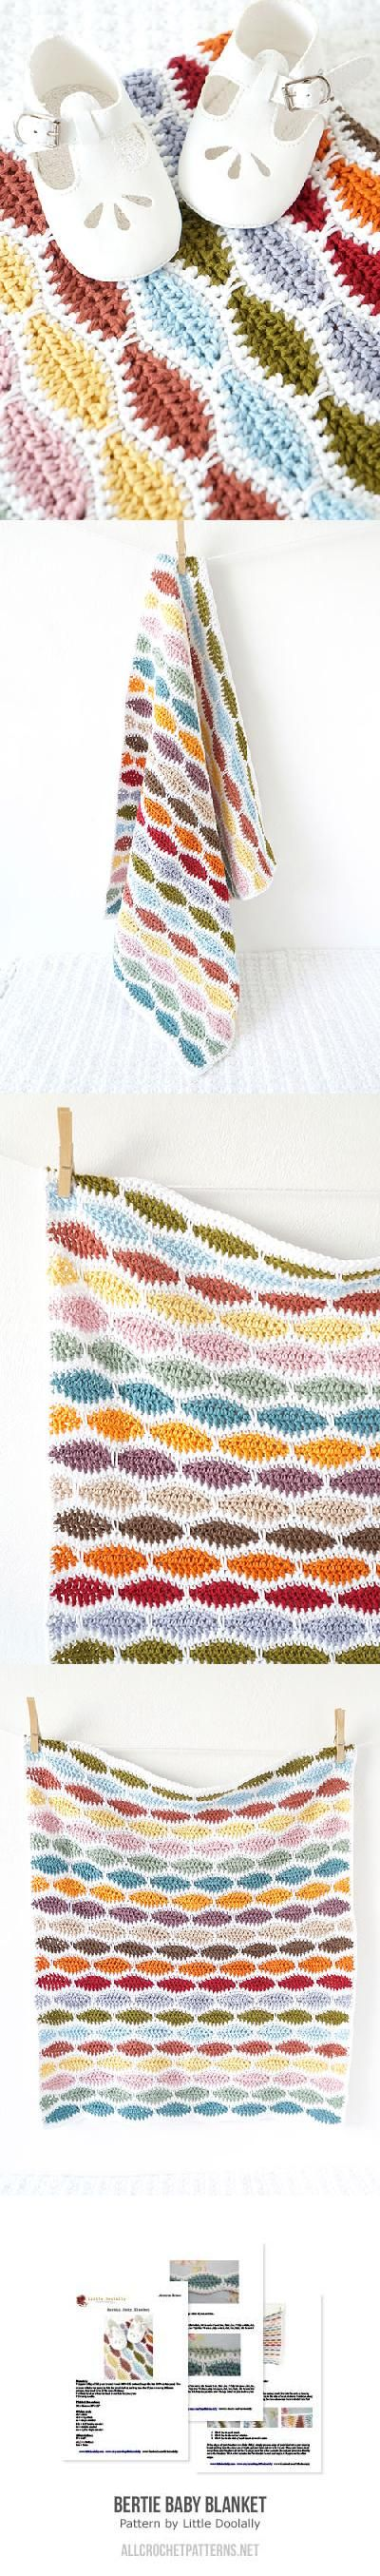 Bertie Baby Blanket crochet pattern by Little Doolally | Manta ...